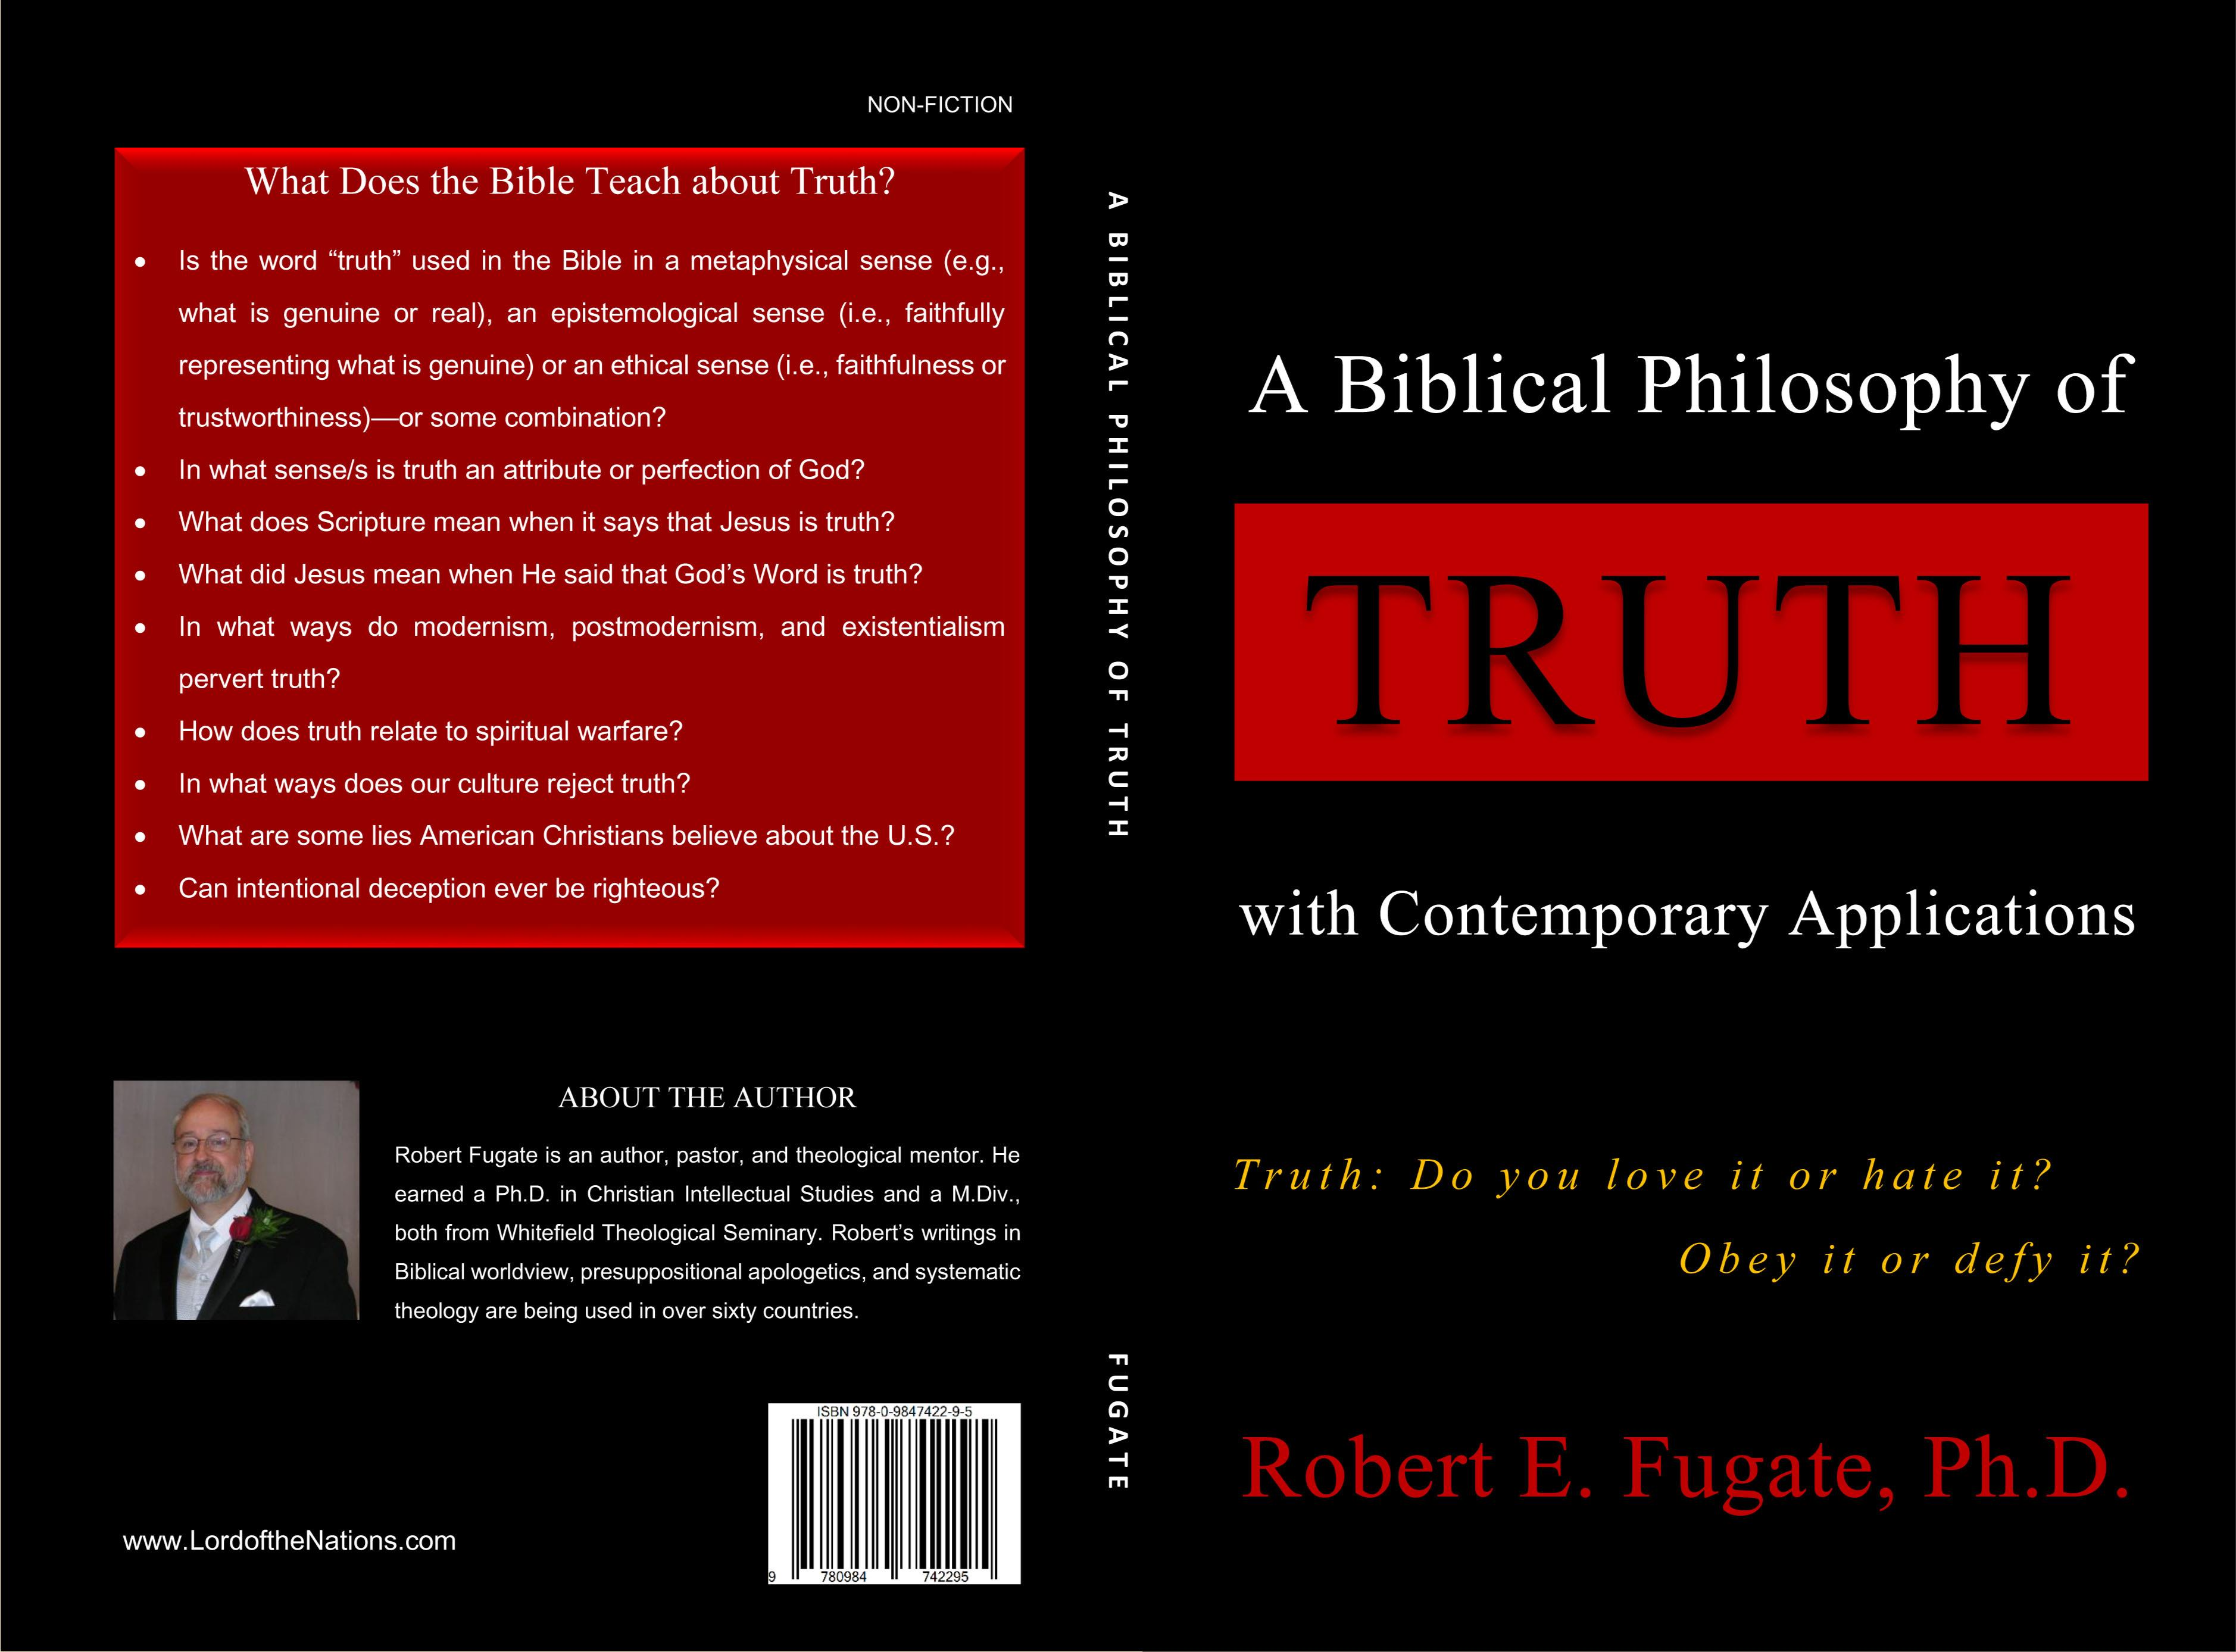 A Biblical Philosophy of Truth with Contemporary Applications cover image